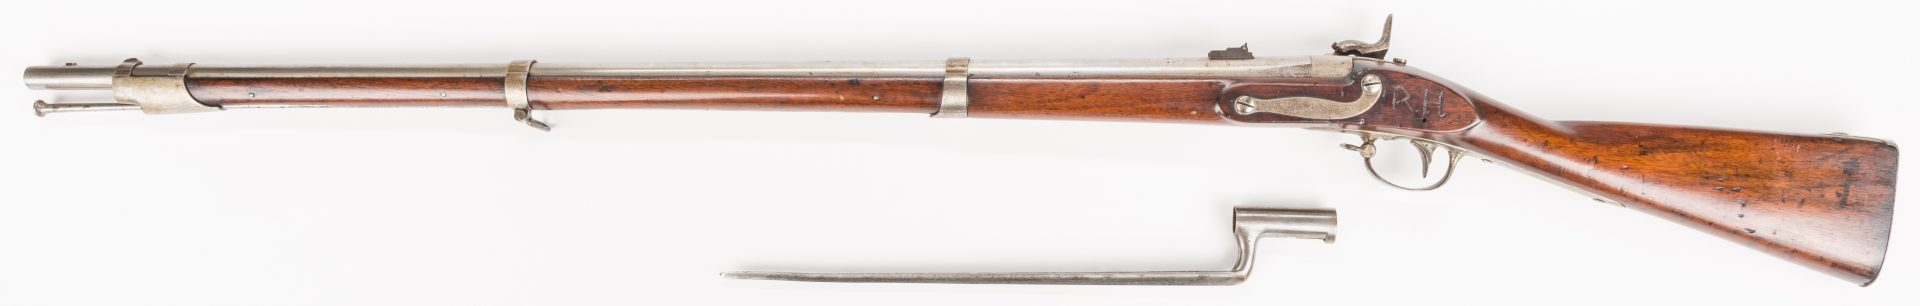 Lot 211: Harpers Ferry Model 1840 US Conversion Musket w/ Bayonet